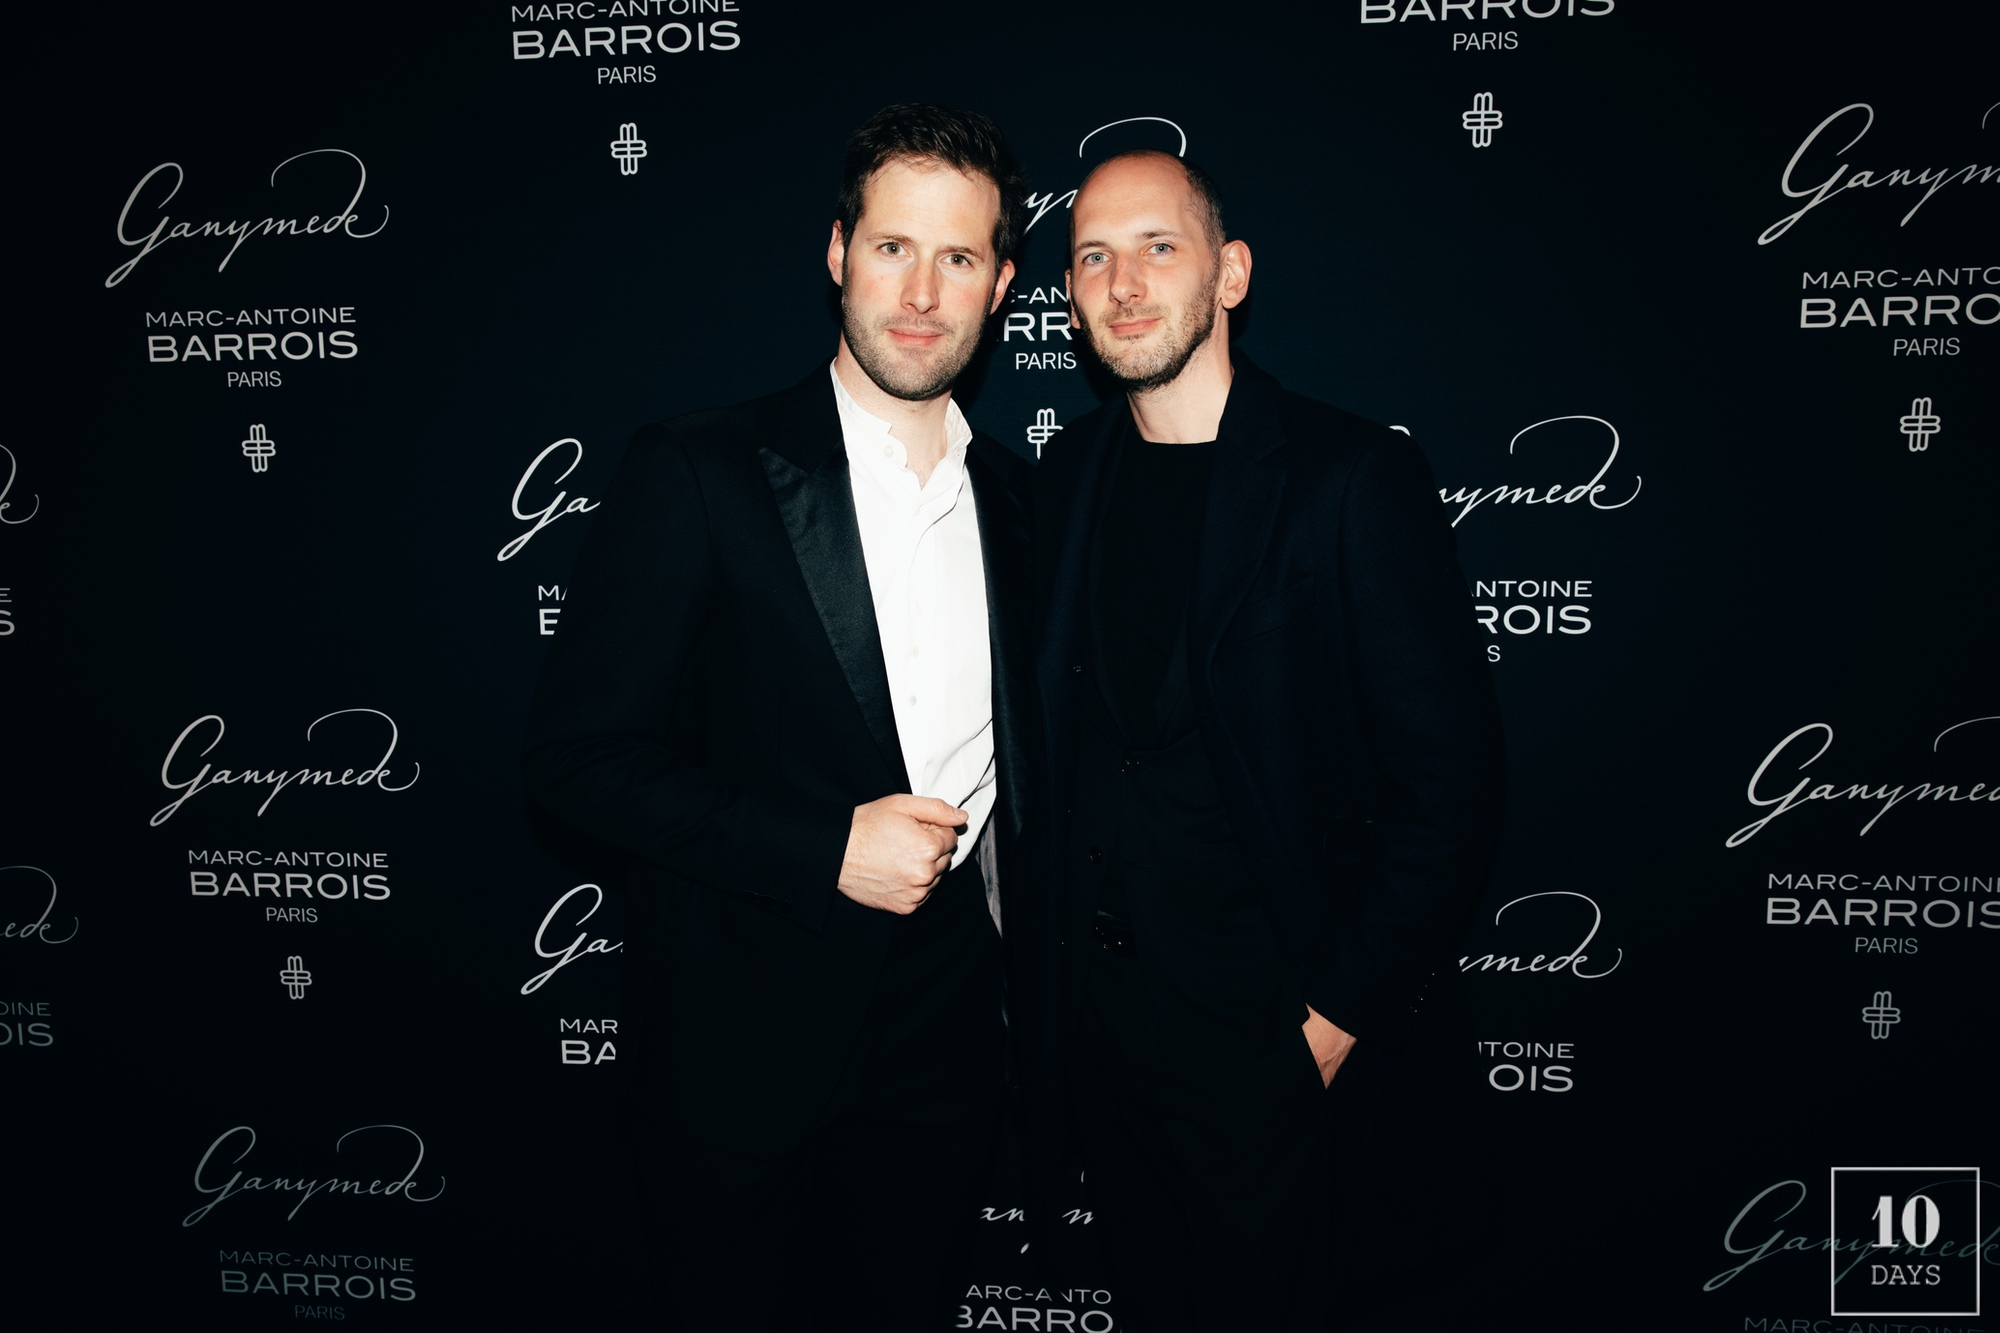 """Ganymede"" New Perfume by Marc-Antoine Barrois Launching Gala Dinner"